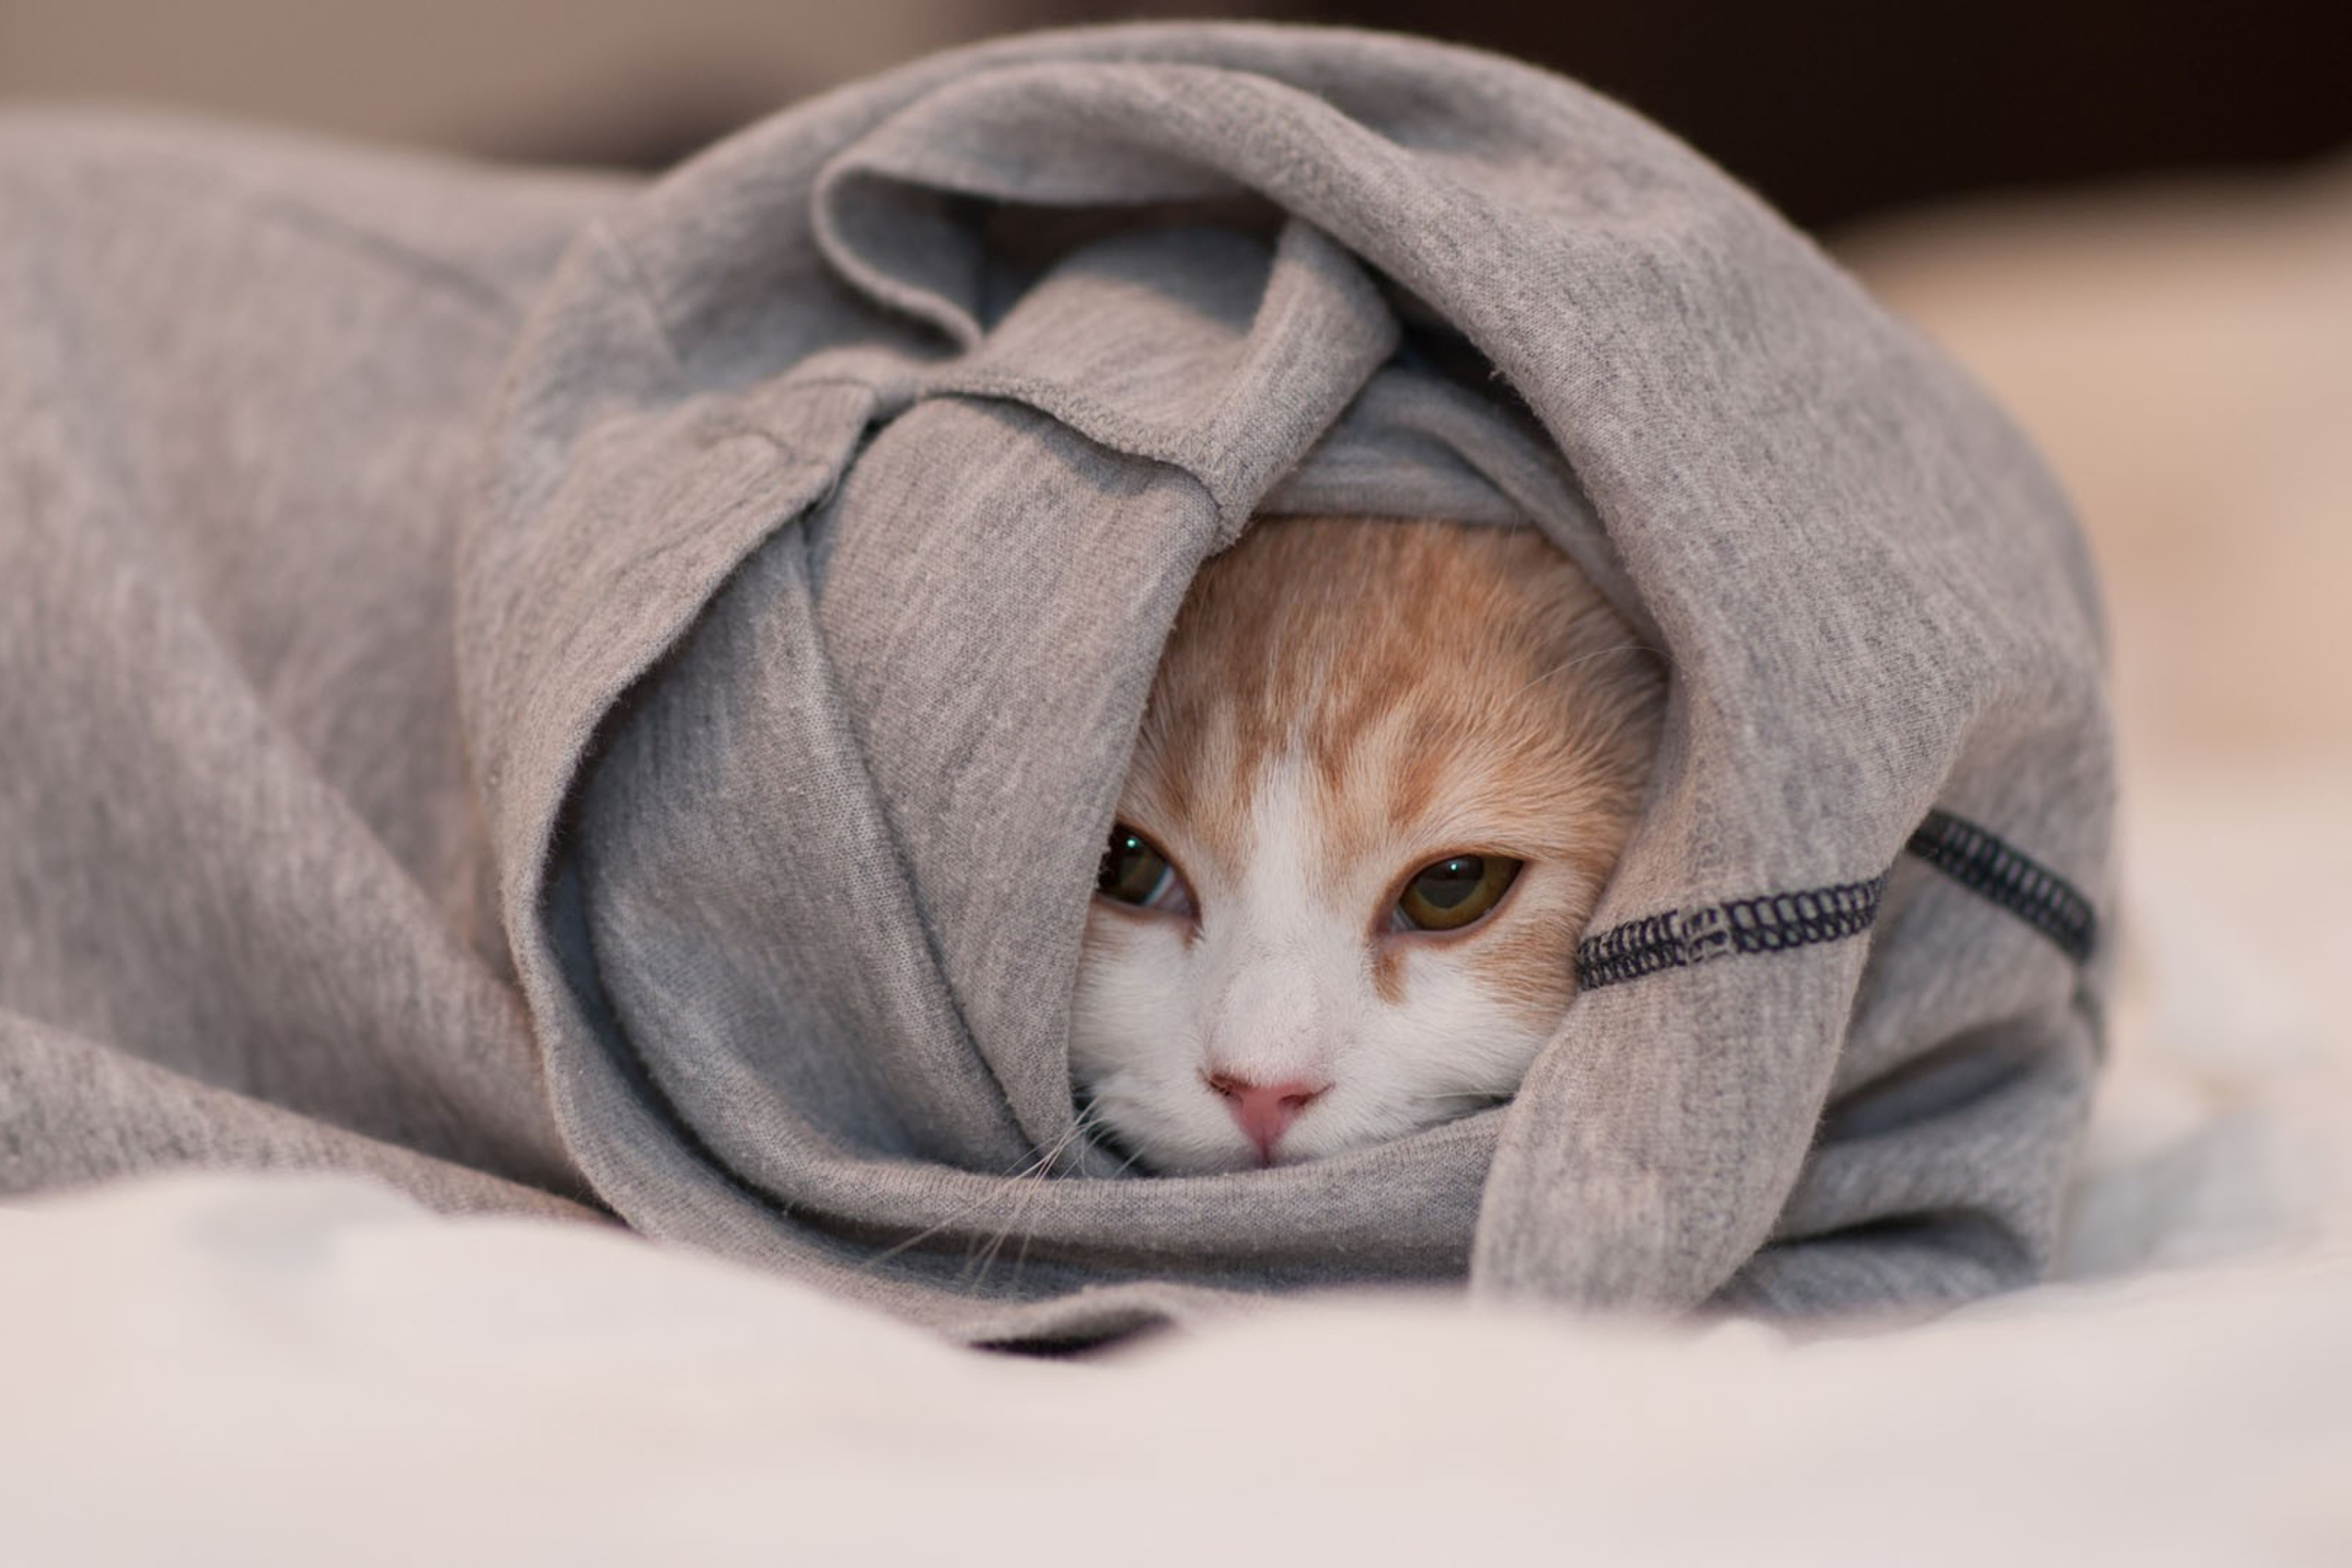 Cat-Hiding-In-T-Shirt-2880x1920.jpg